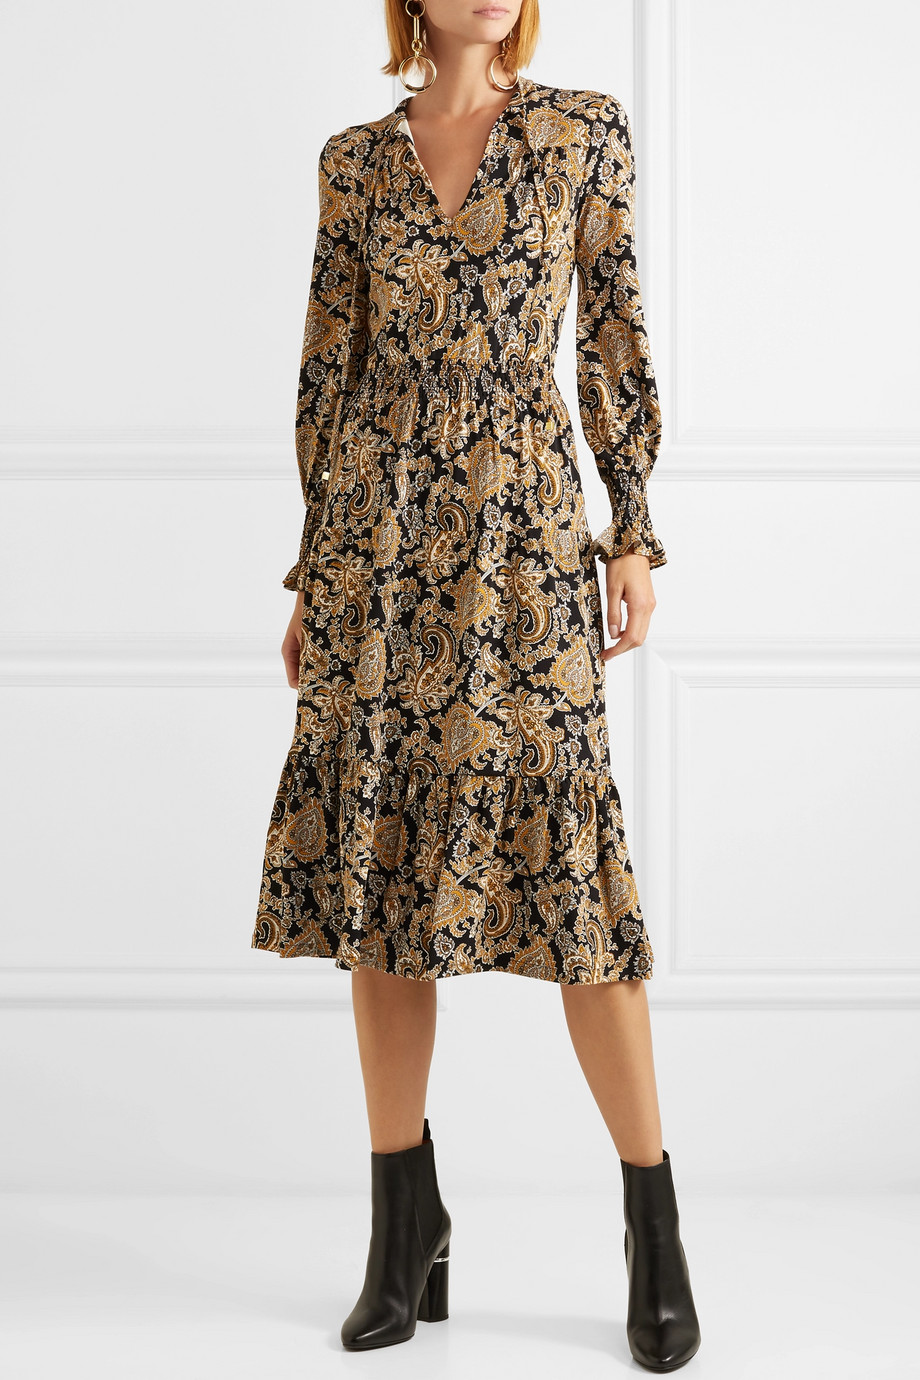 What to Wear to a Winter Wedding , Winter Wedding Guest